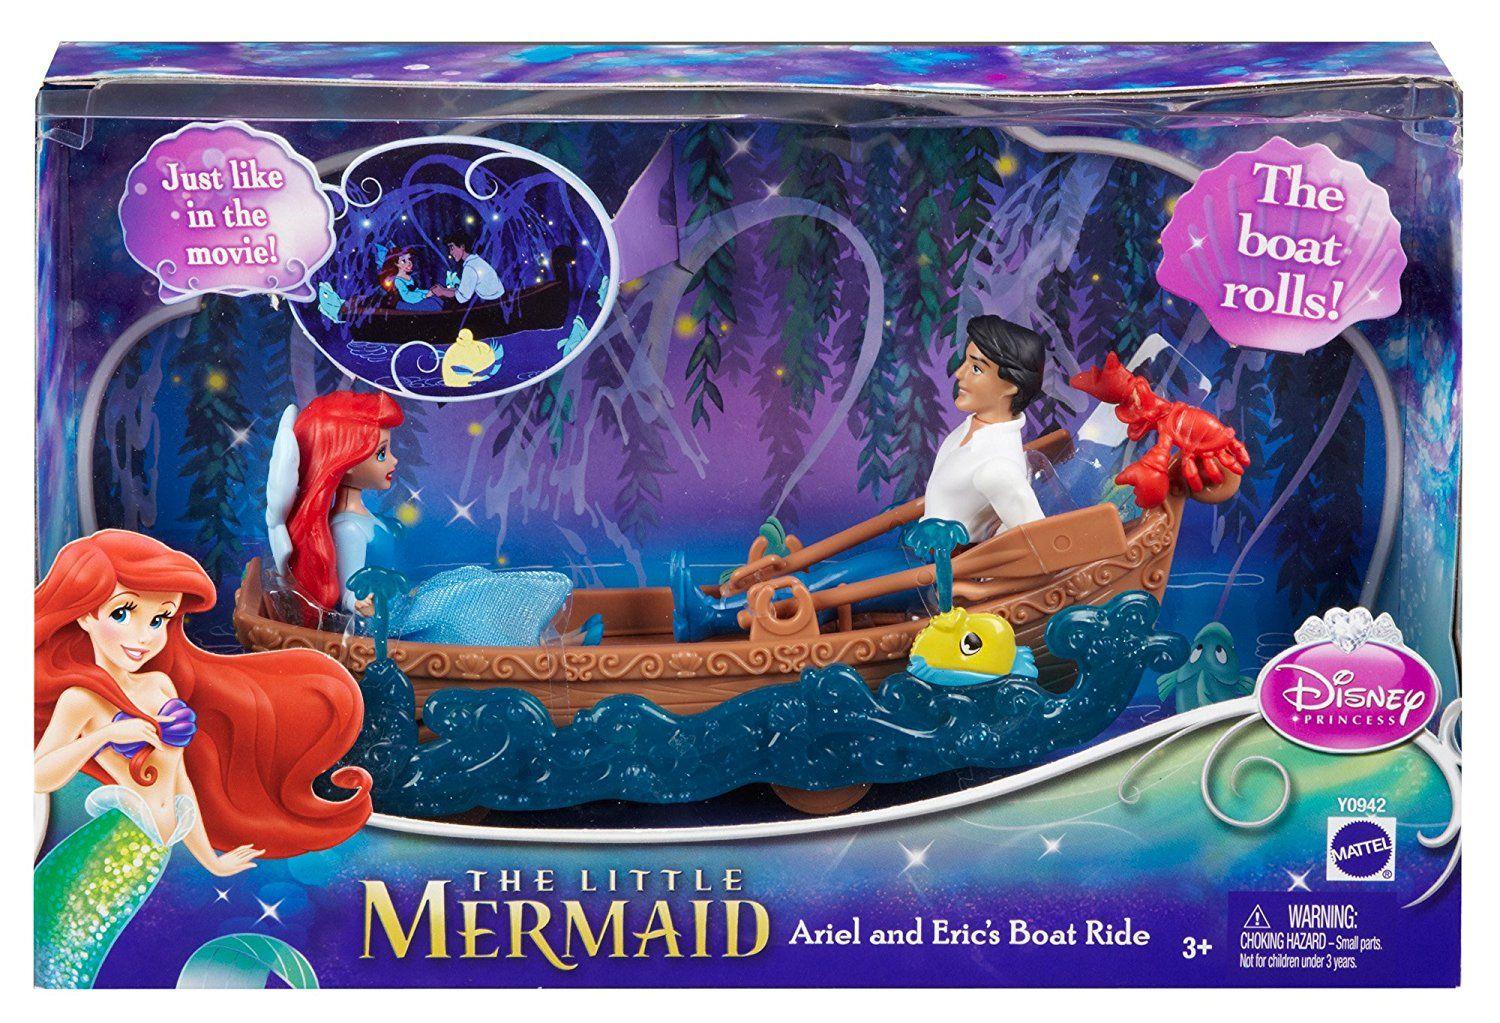 Amazon.com: Disney Princess Favorite Moments The Little Mermaid Ariel and Eric's Boat Ride Playset: Toys & Games